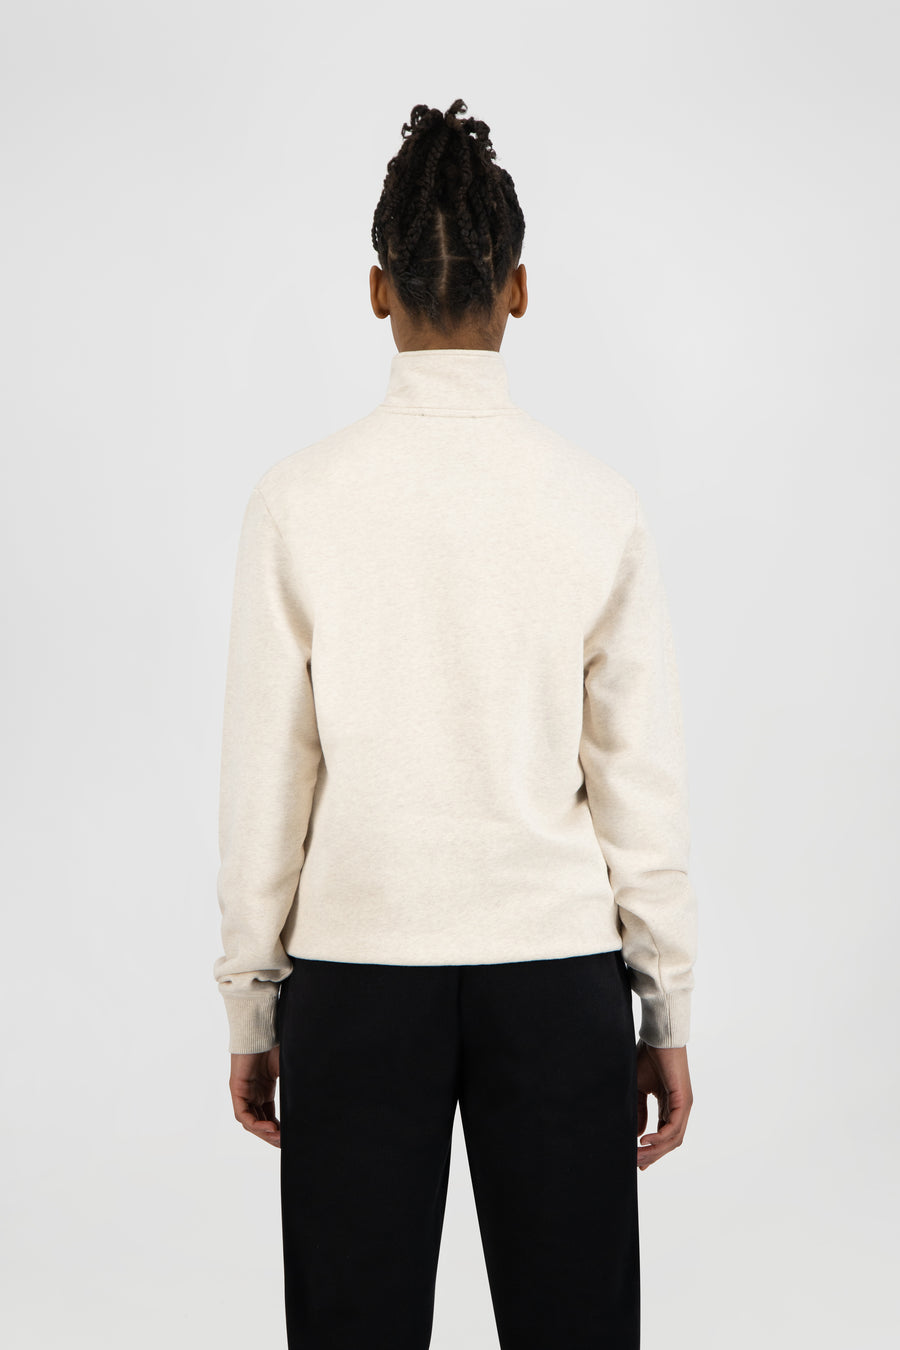 ØLÅF Italic Zip Mock - Ecru Heather